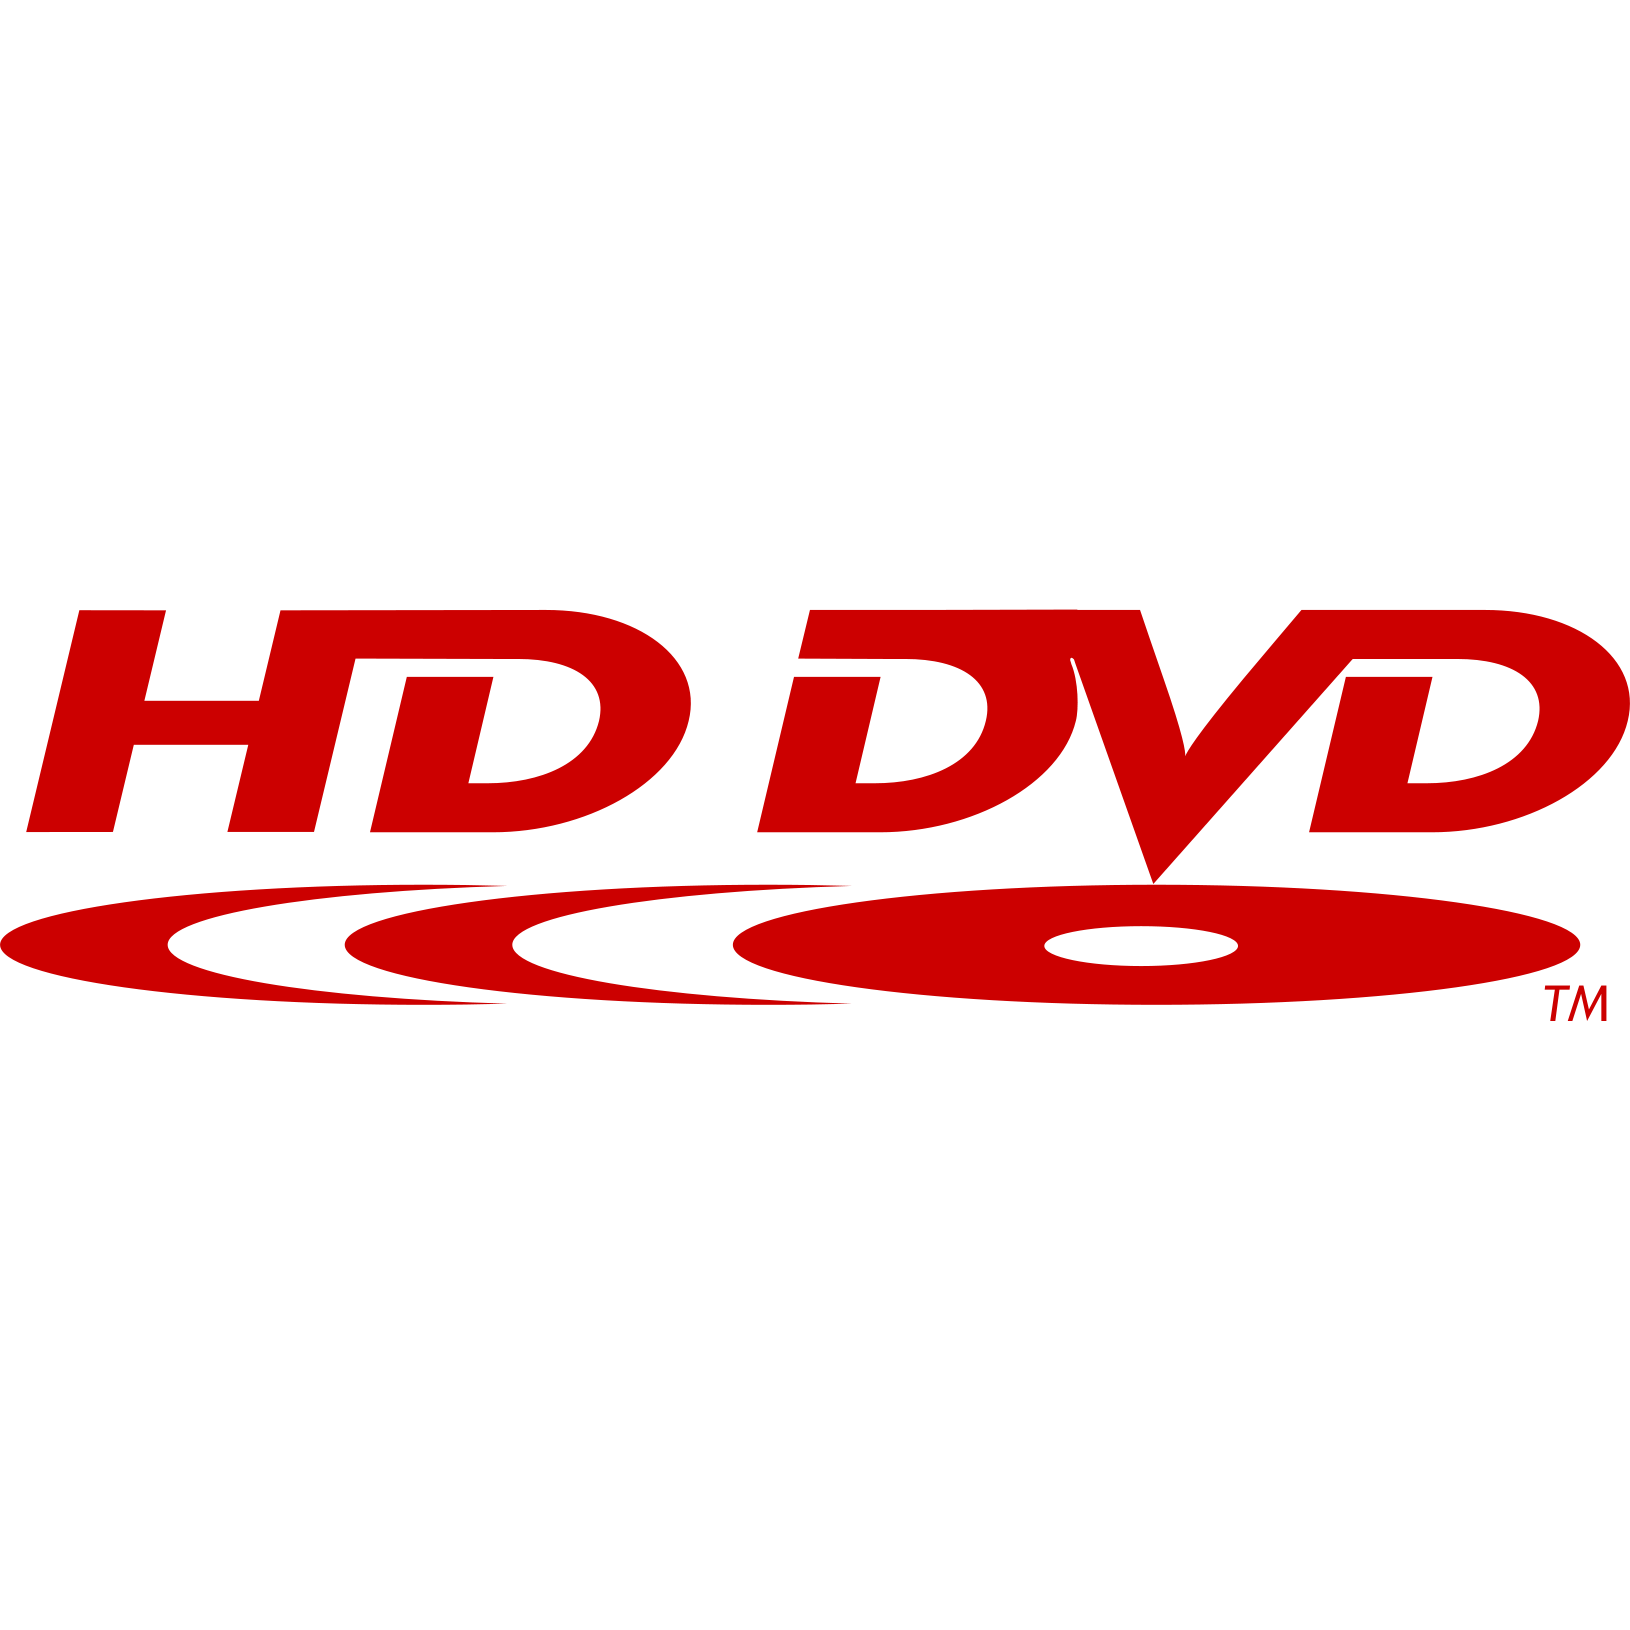 dvd logo transparent png pictures free icons and png backgrounds rh freeiconspng com dvd rom logo png hd dvd logo png